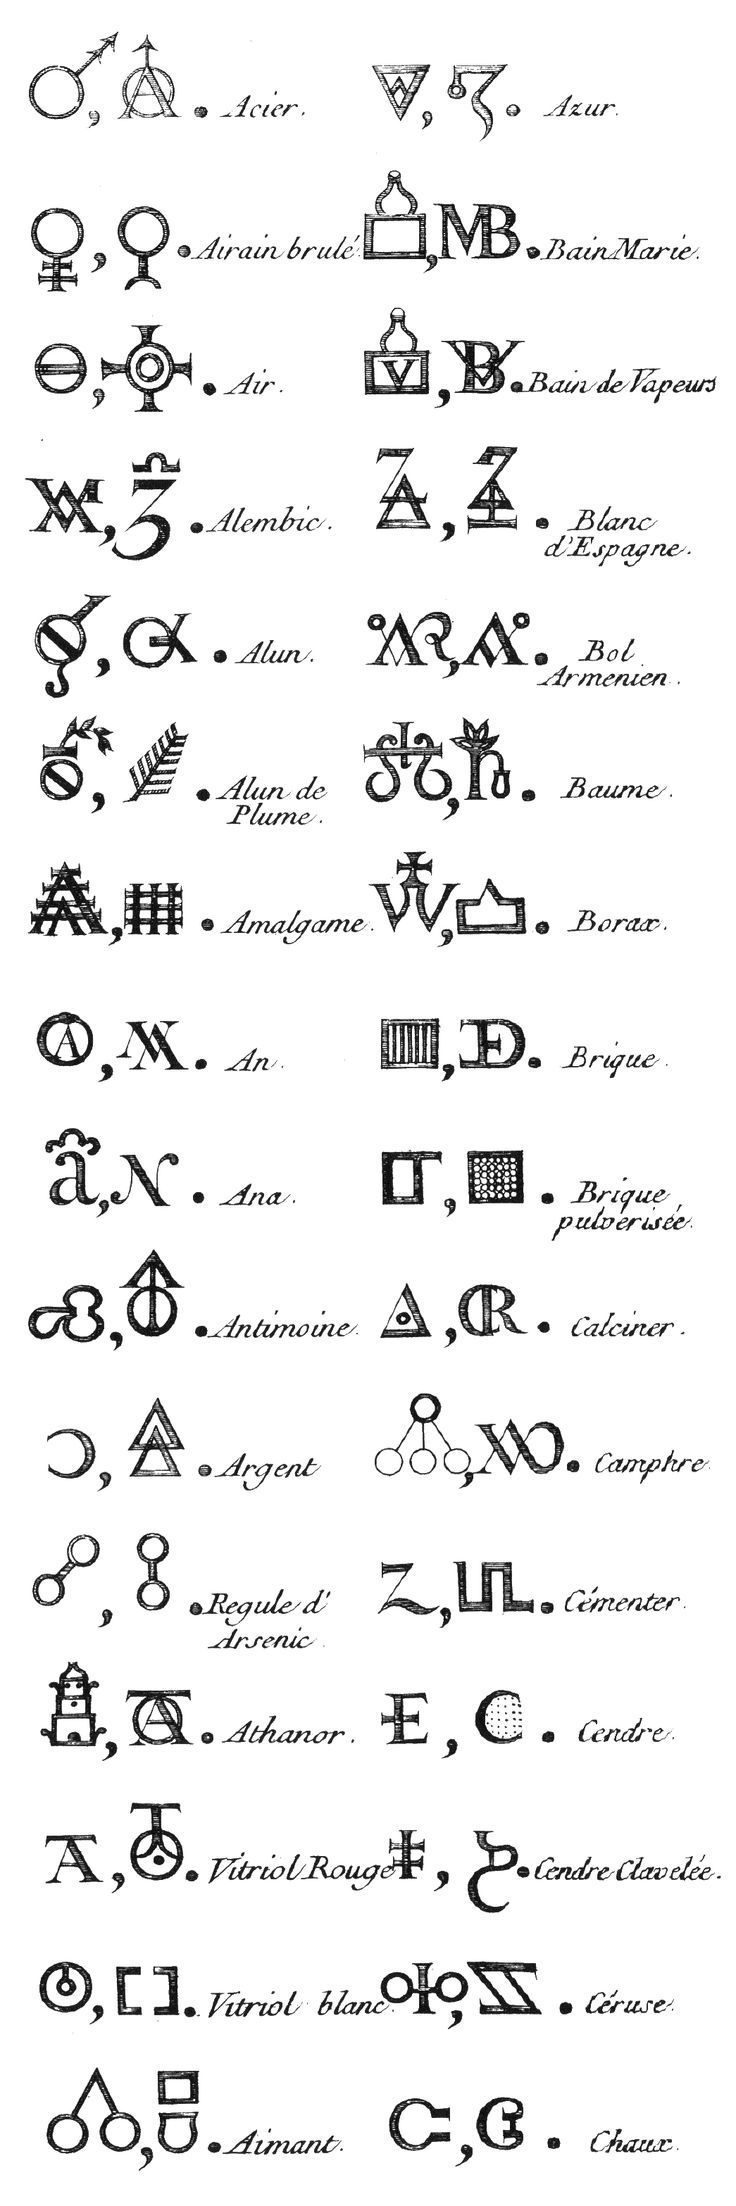 Diderot and dalembert alchemical symbols symbole itp diderot and dalembert alchemical symbols biocorpaavc Gallery